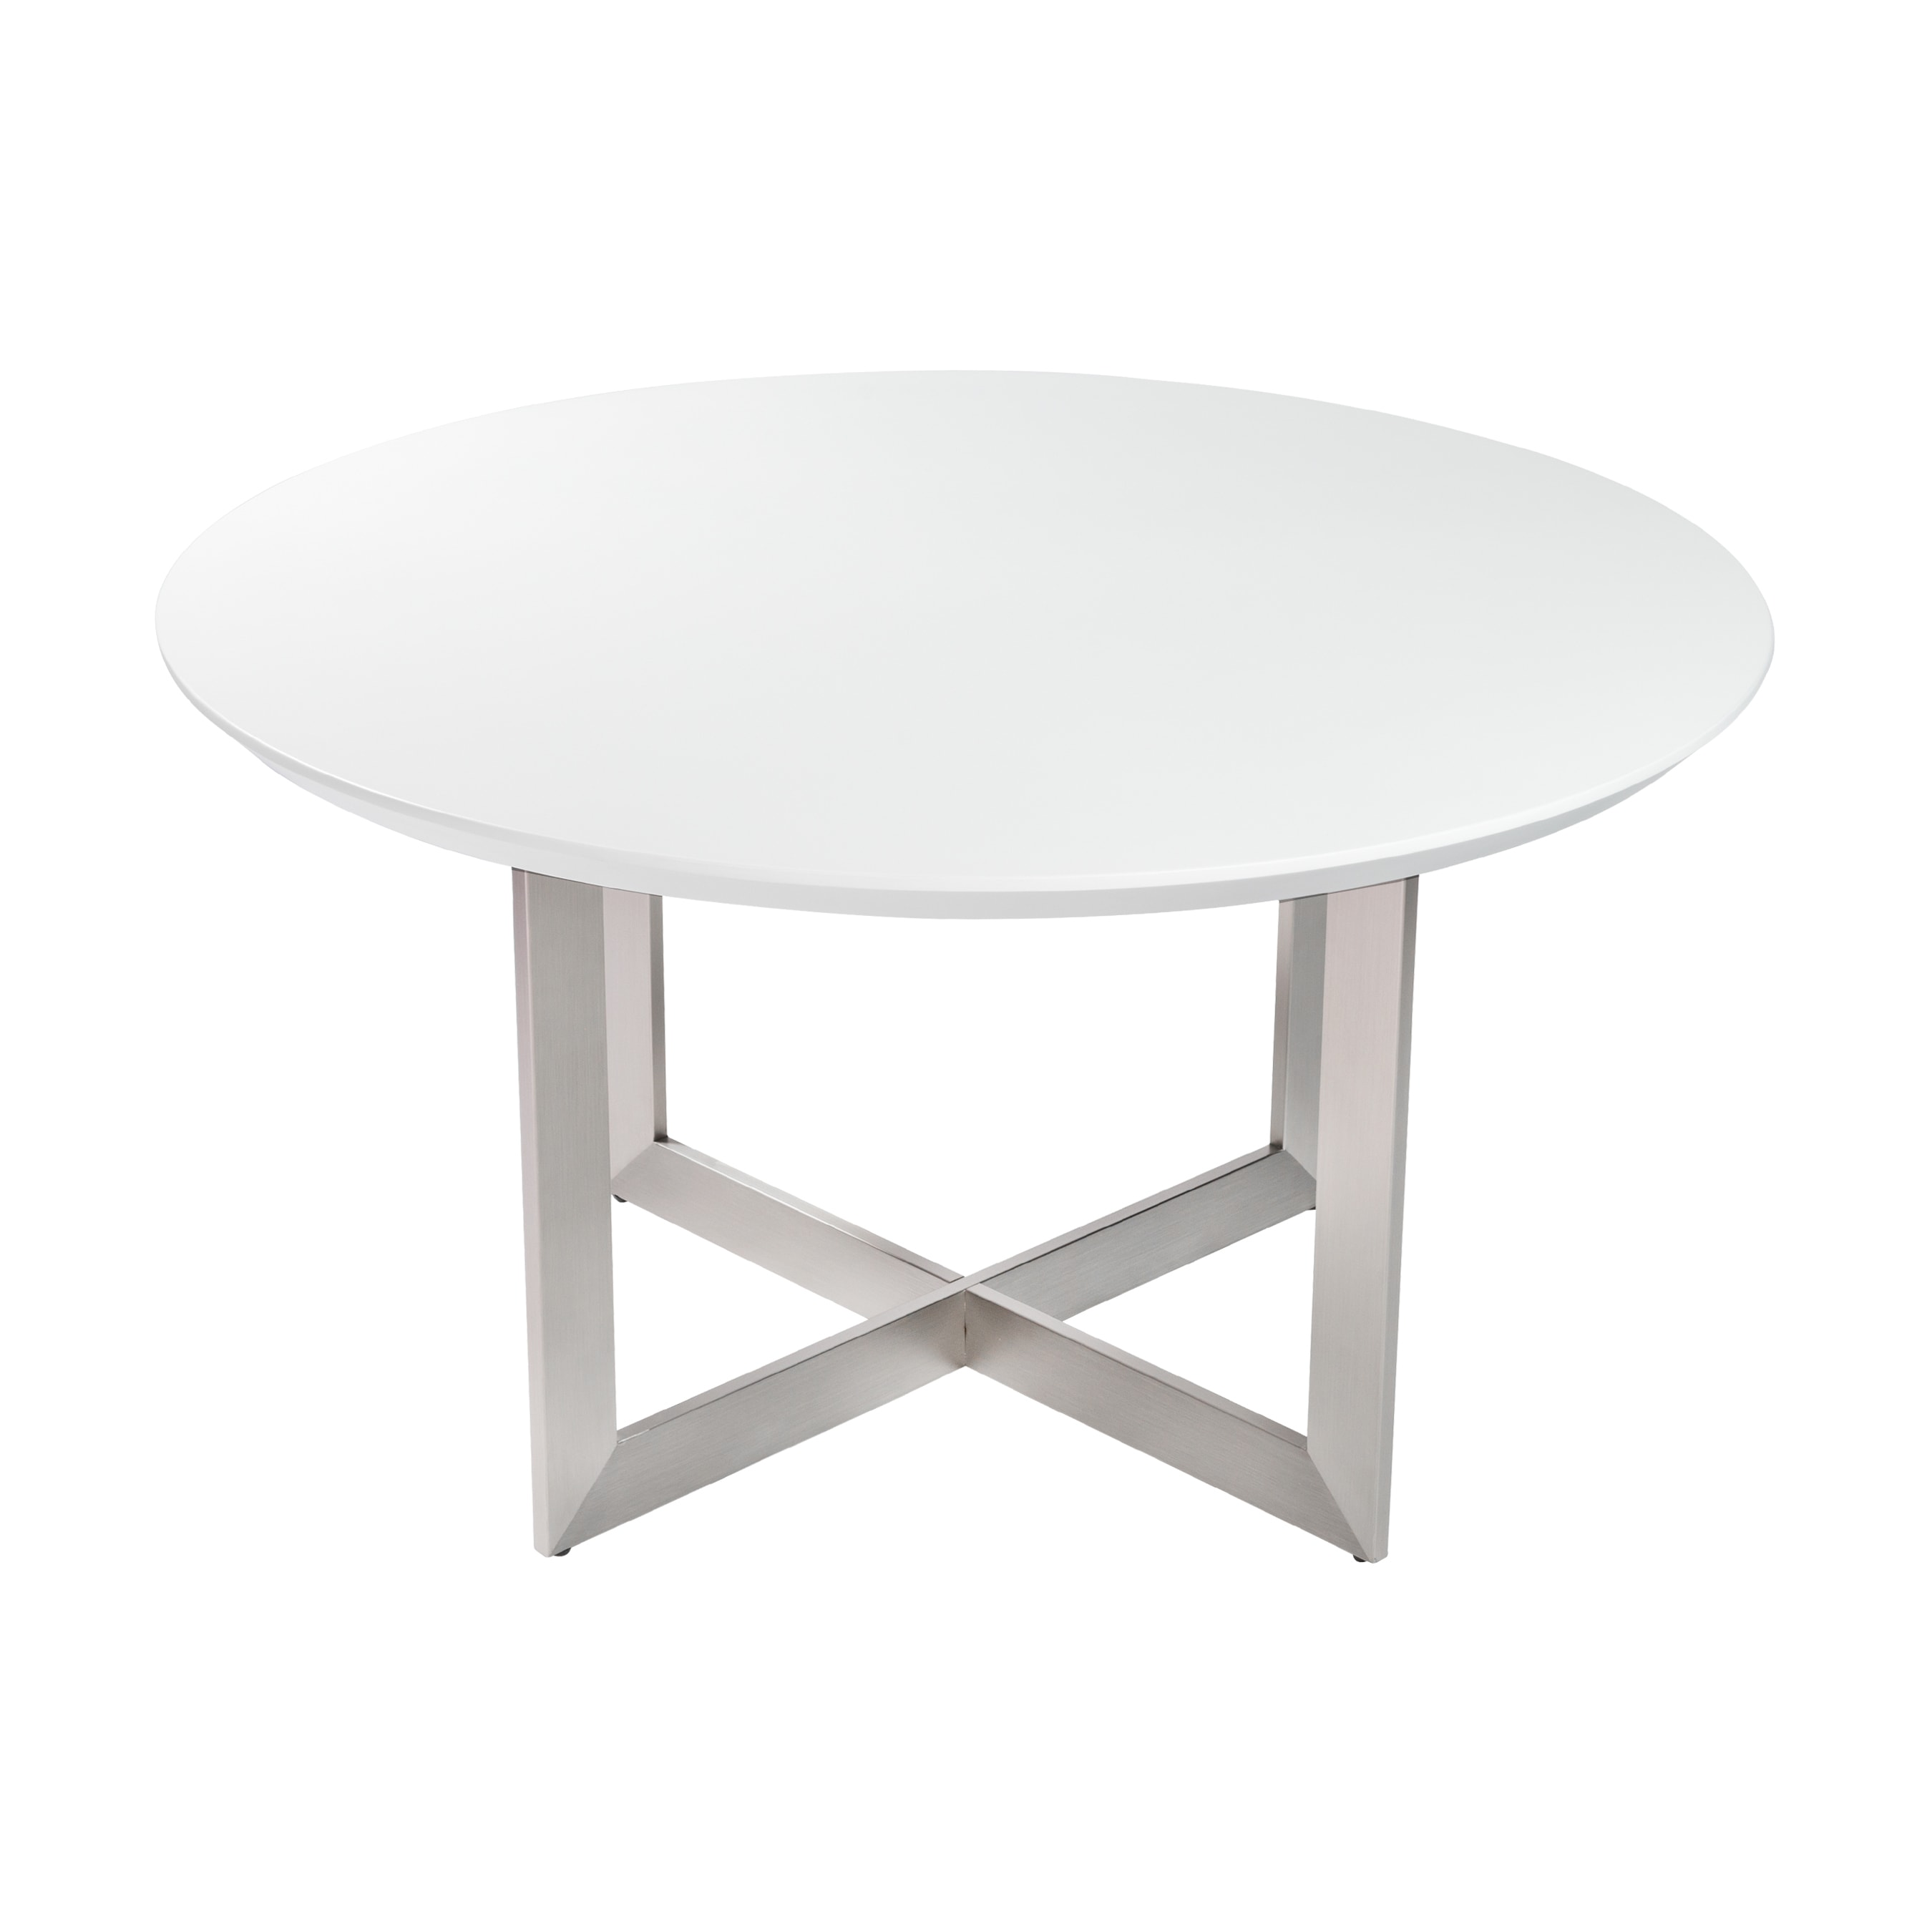 Tosca 54 Round Dining Table In Matte White With Brushed